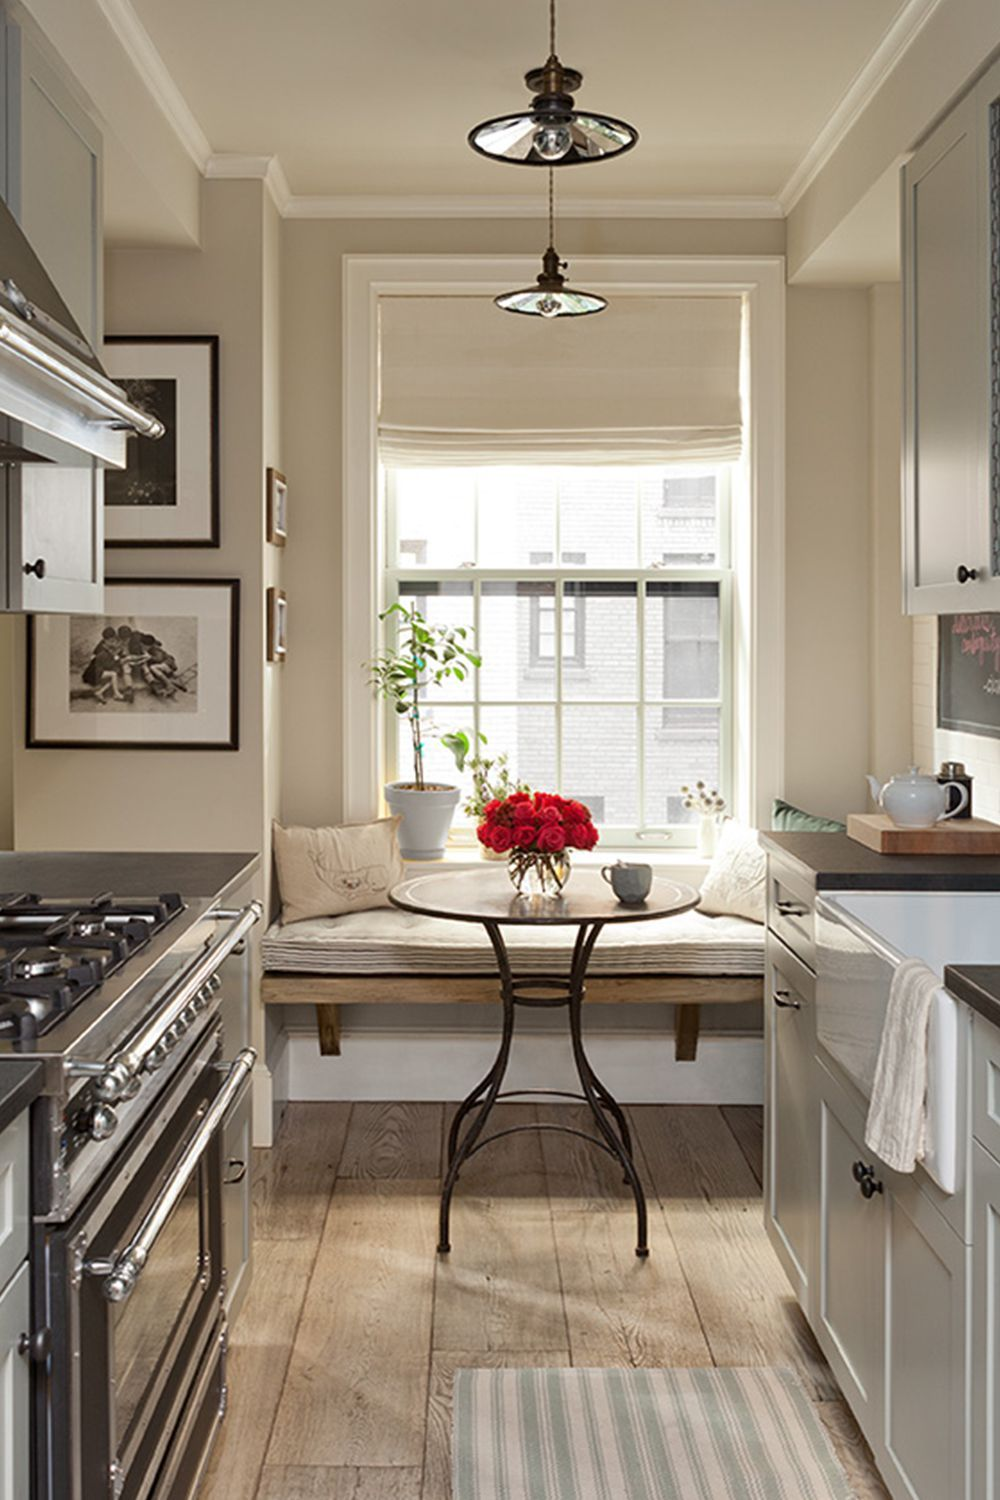 Gorgeous Eat-in Kitchens for Every Type of Home images